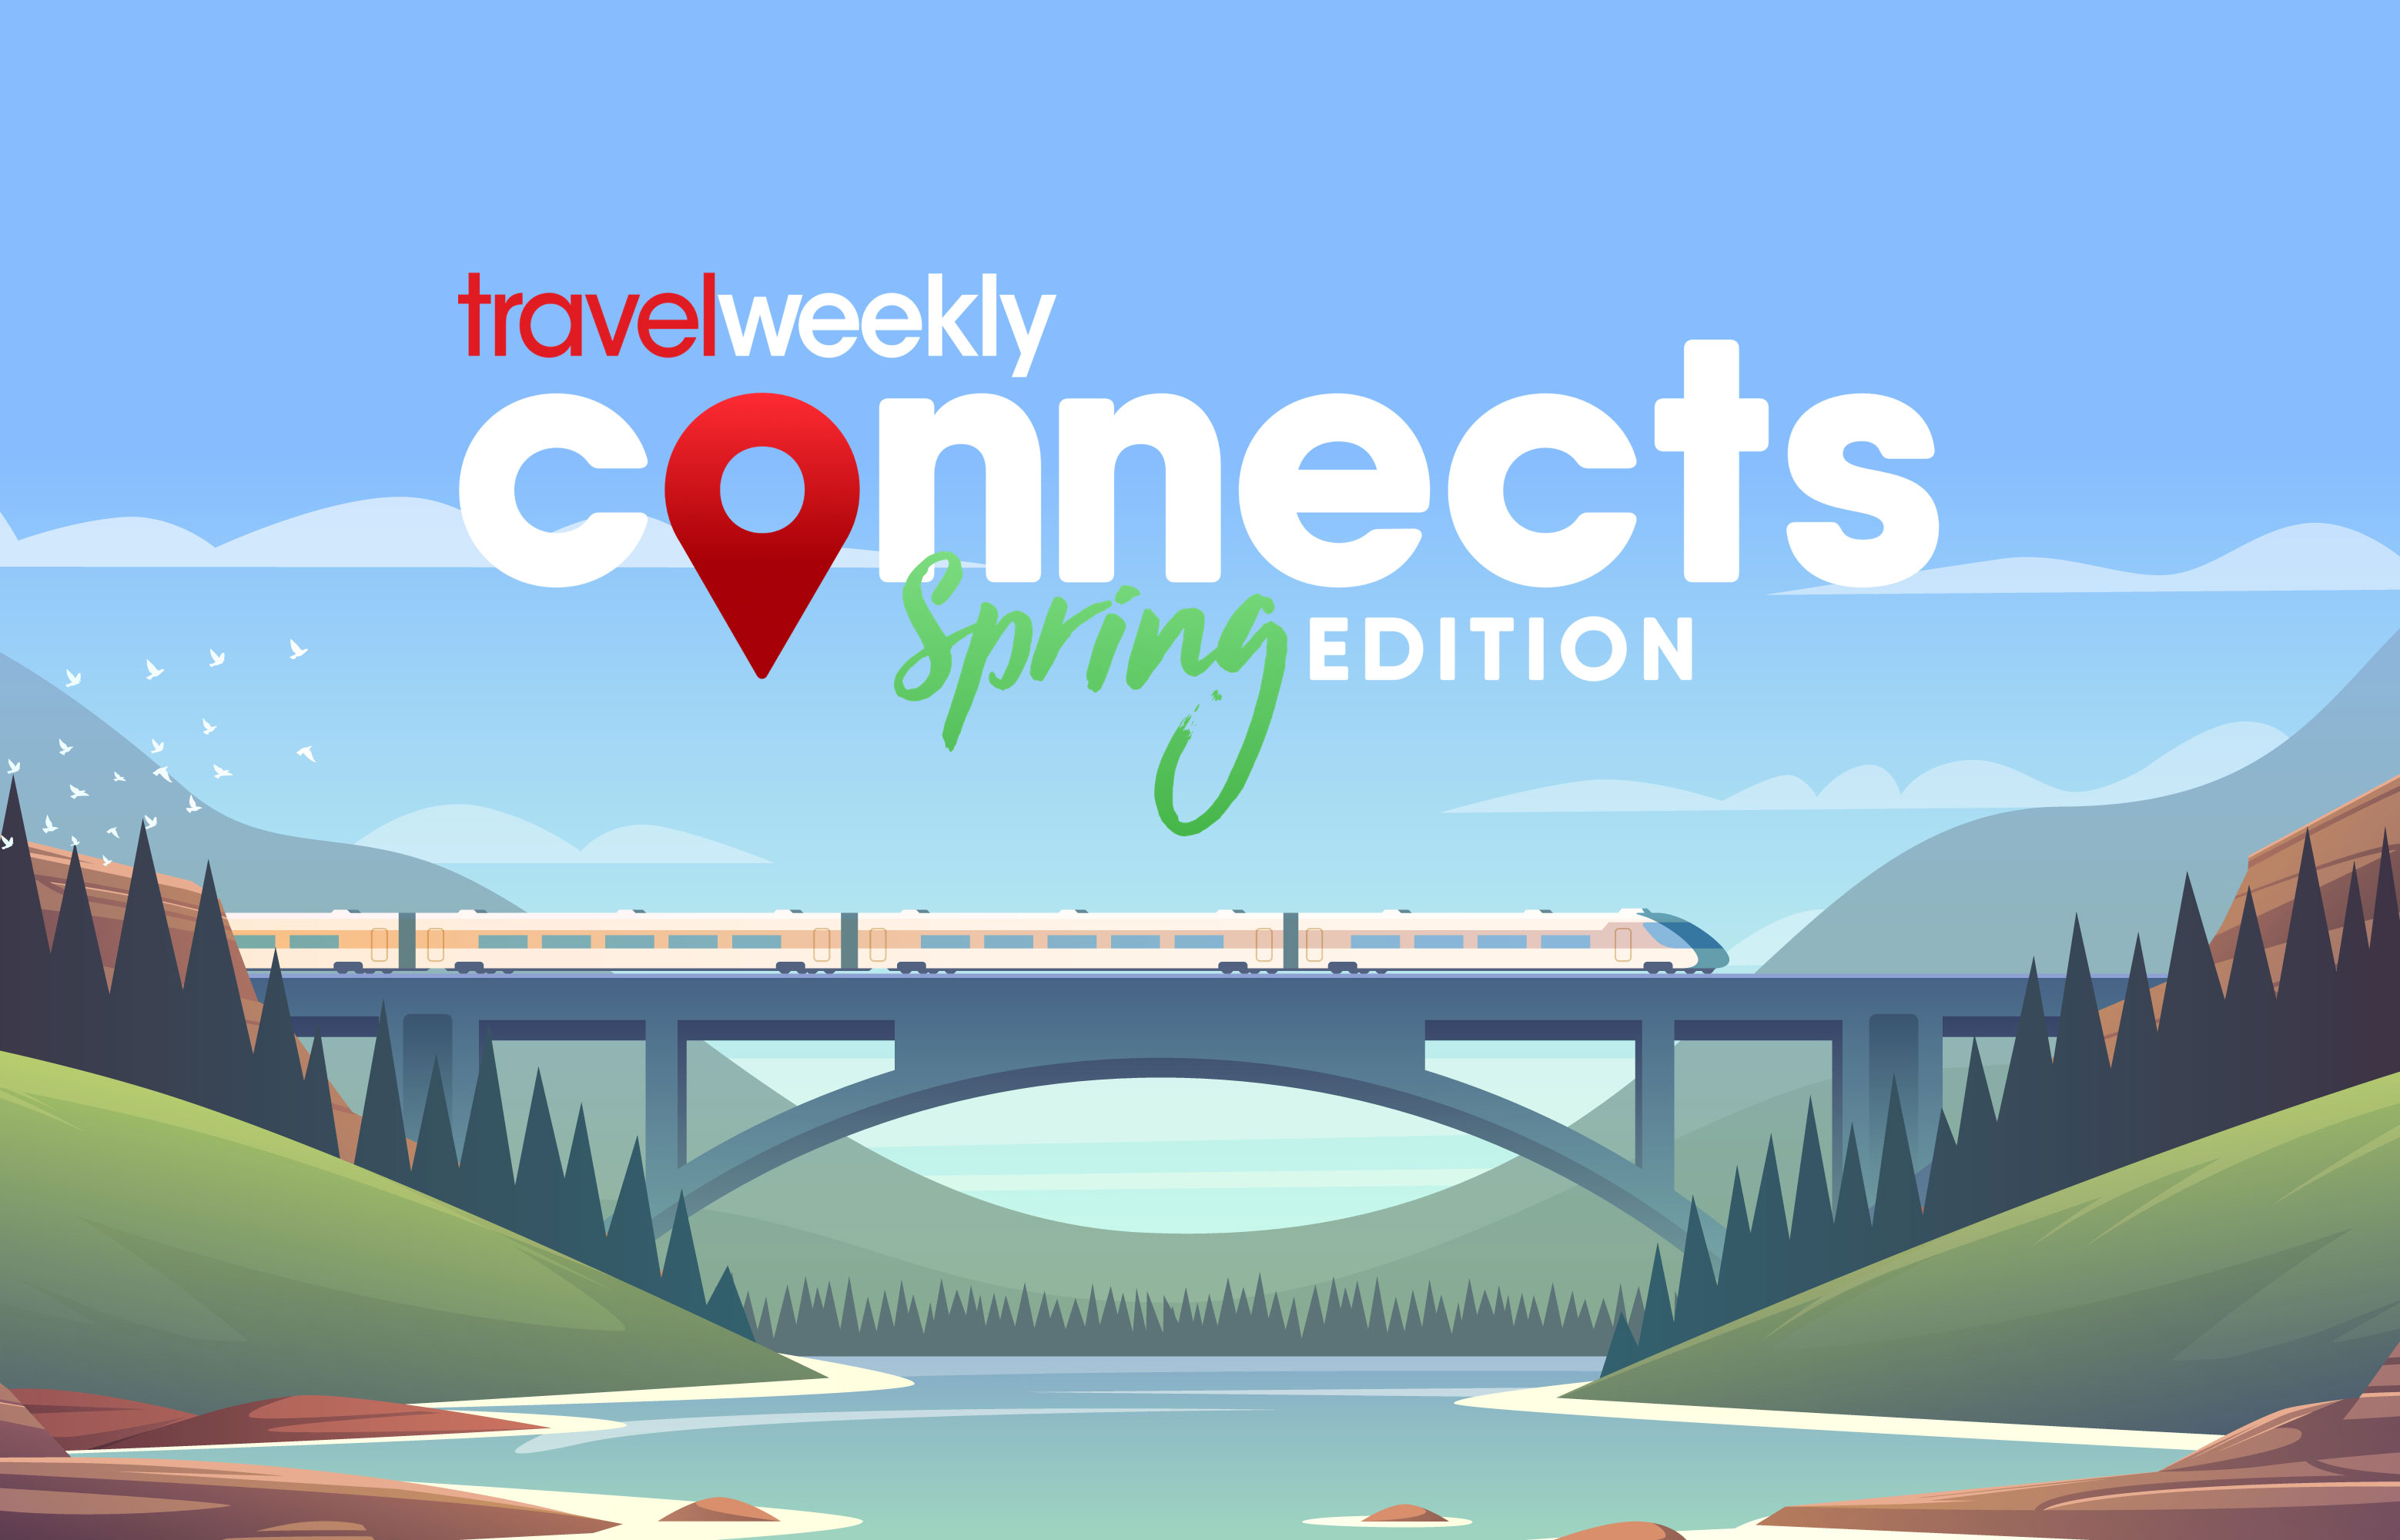 Travel Weekly Connects